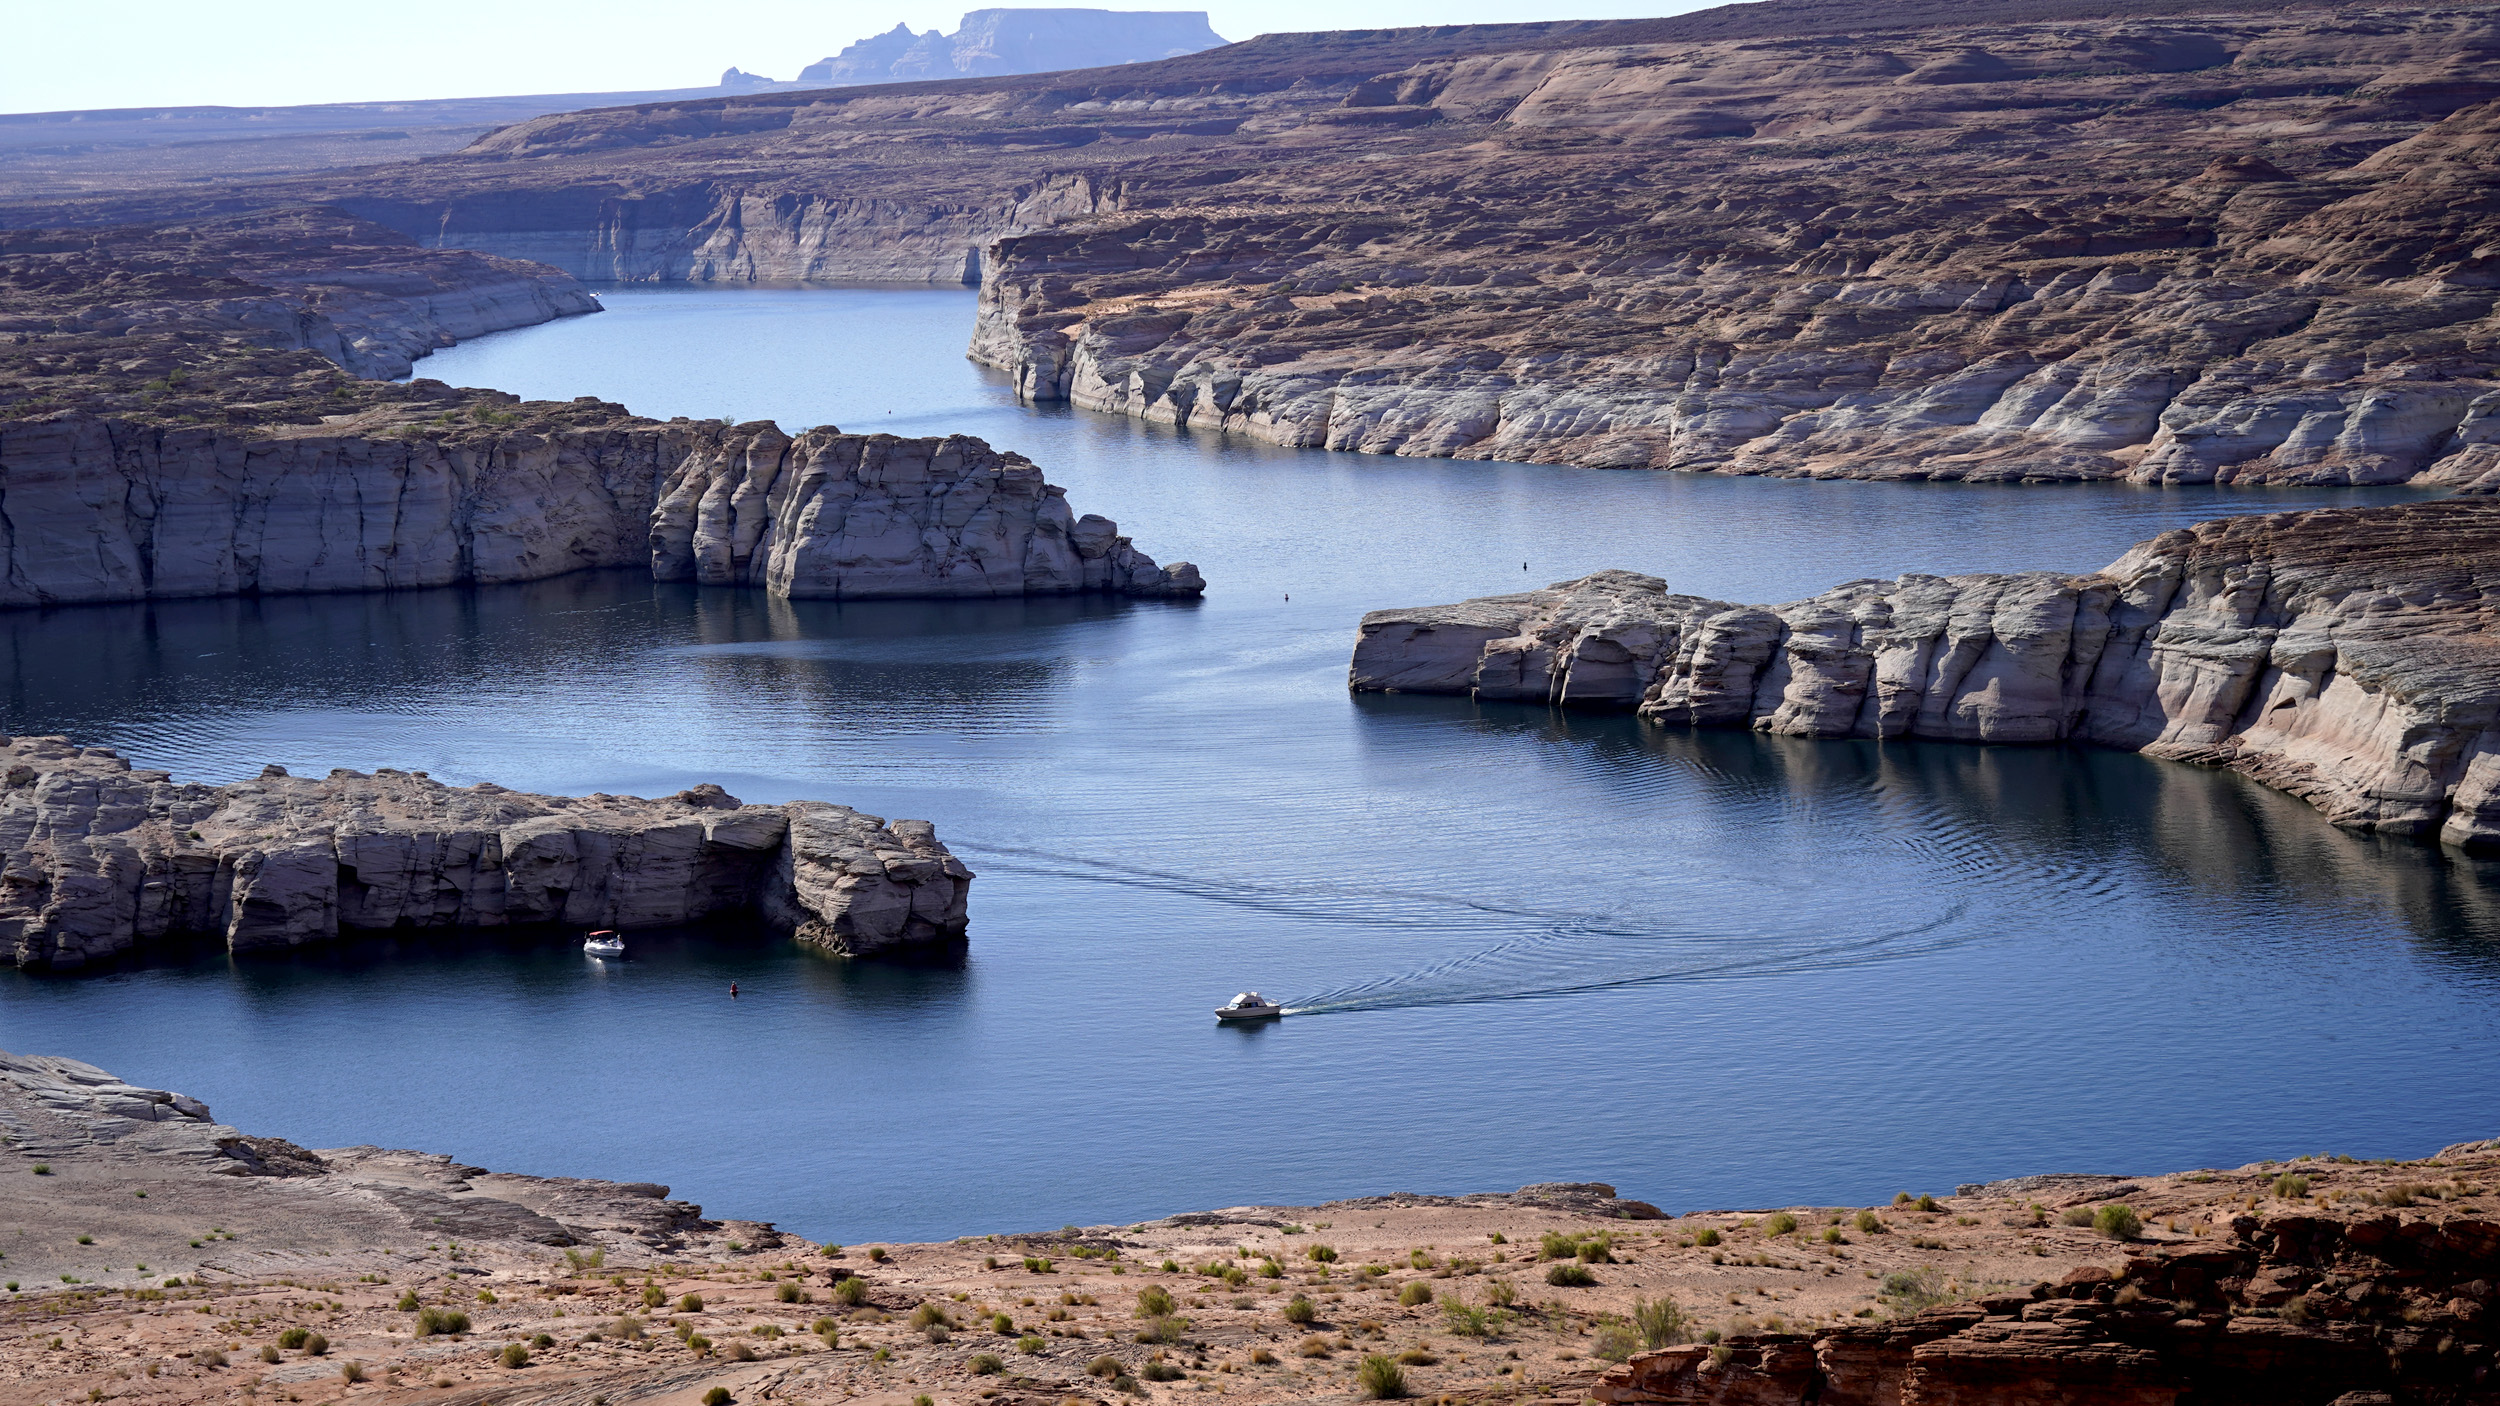 Lake Powell water level dips to historic low